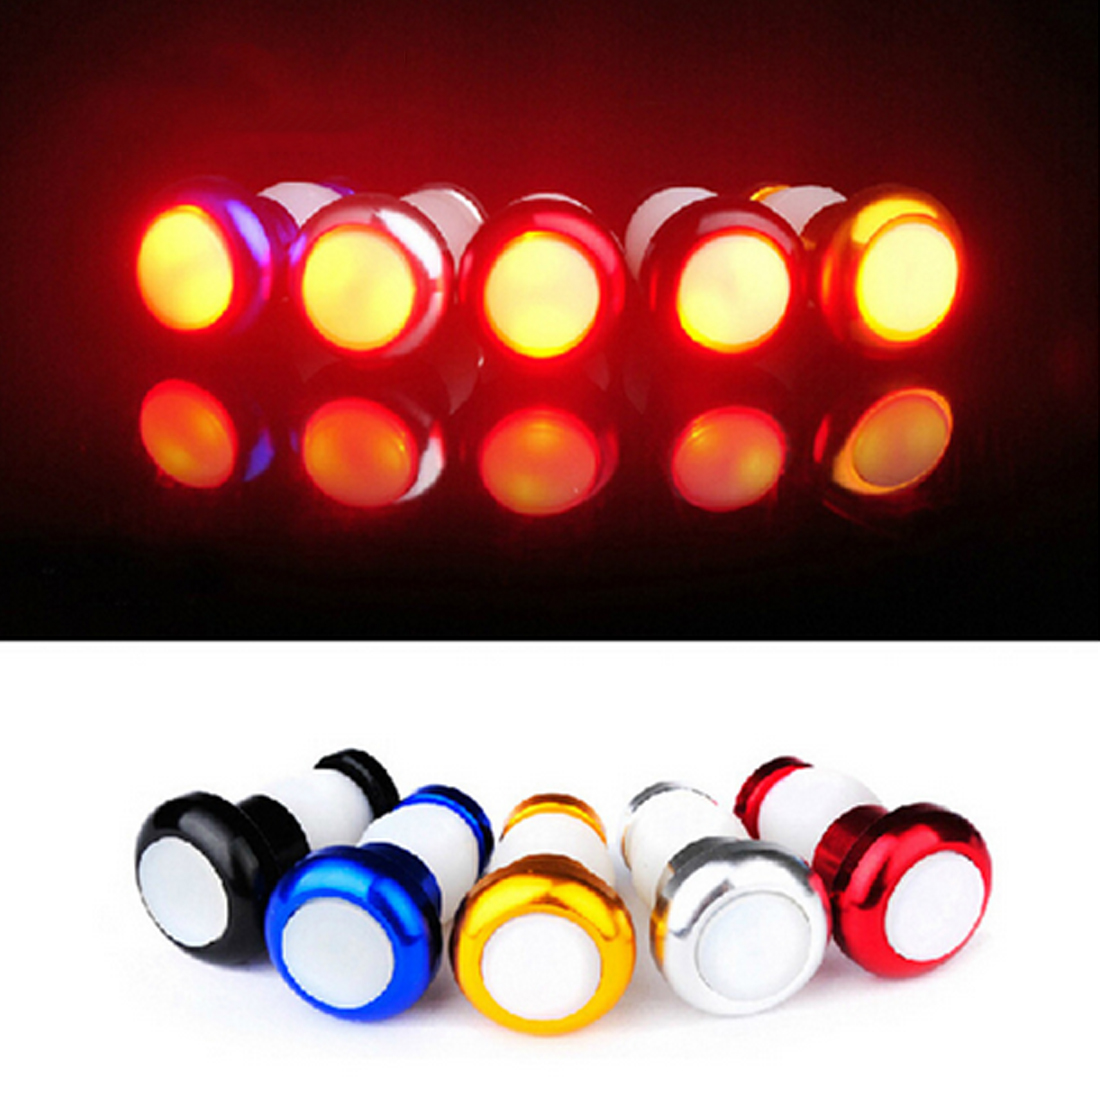 Indicator Safety Warning Lamp Cycling 1Pair Bike Light Turn Signal LED Handlebar Safety Caution Light Bicycle Accessories